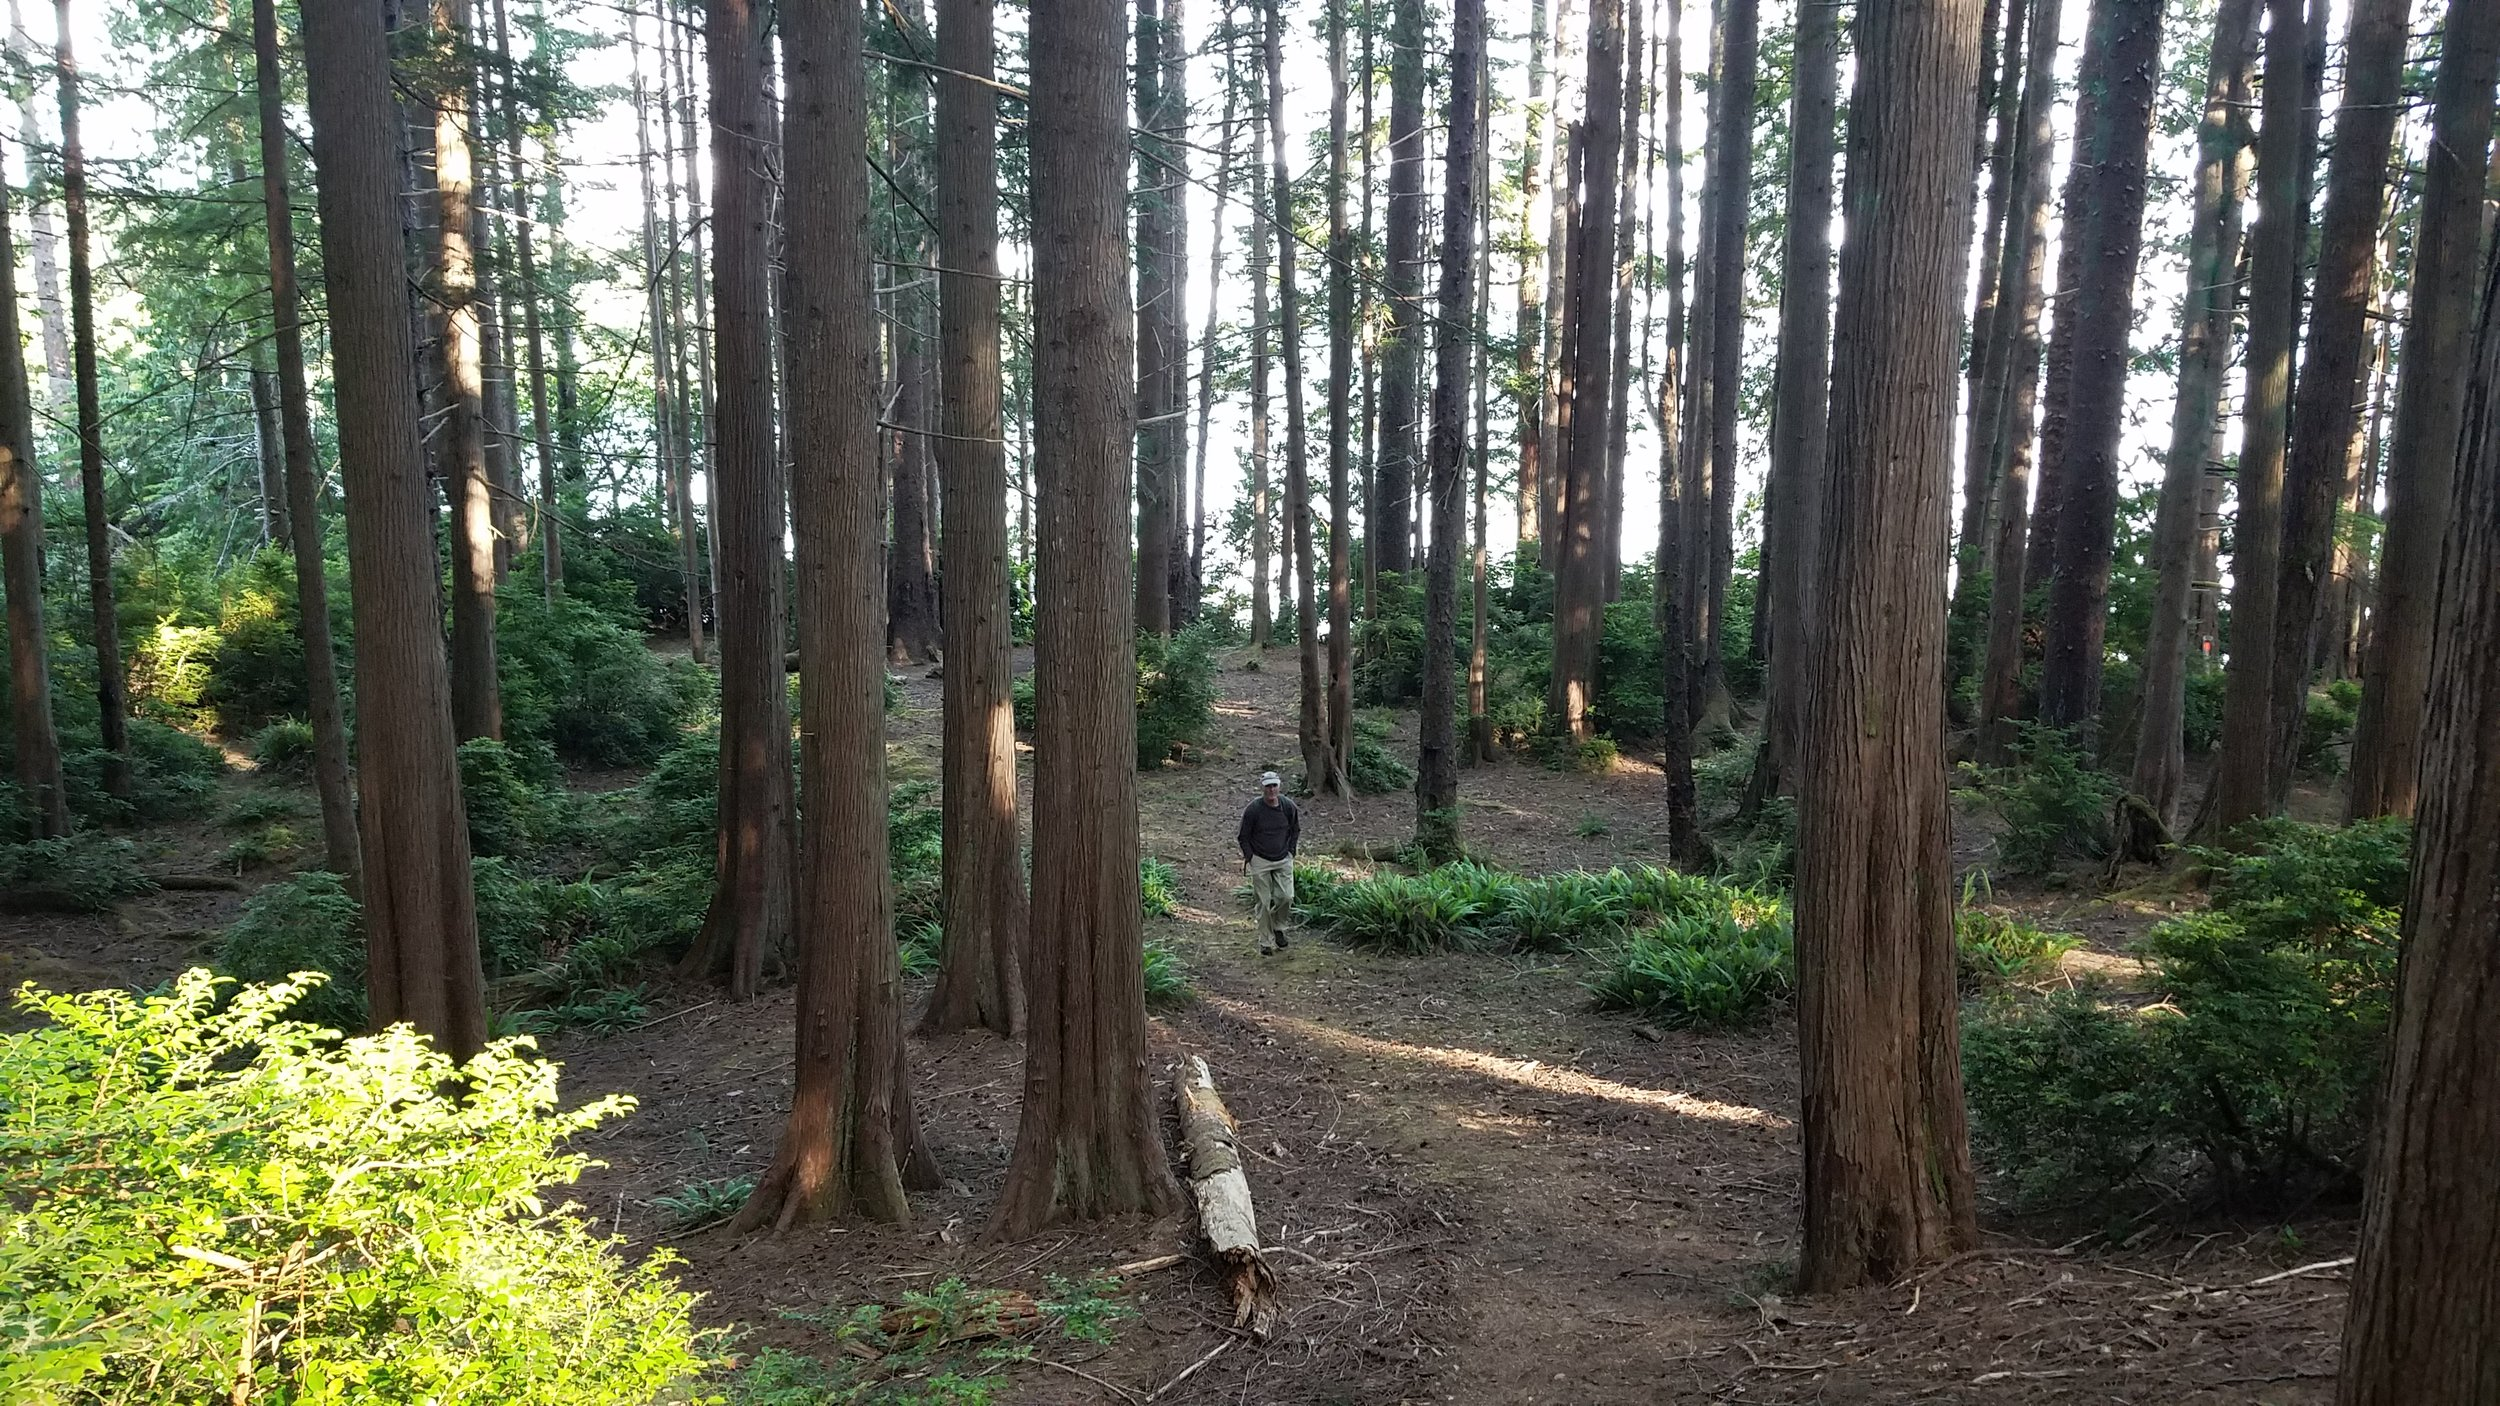 Erickson's Bay campground on Lake Ozette features a very young, tidy forest of western red-cedars, ferns, and huckleberry and looks like a Hollywood set. Photo by MM Ruth.